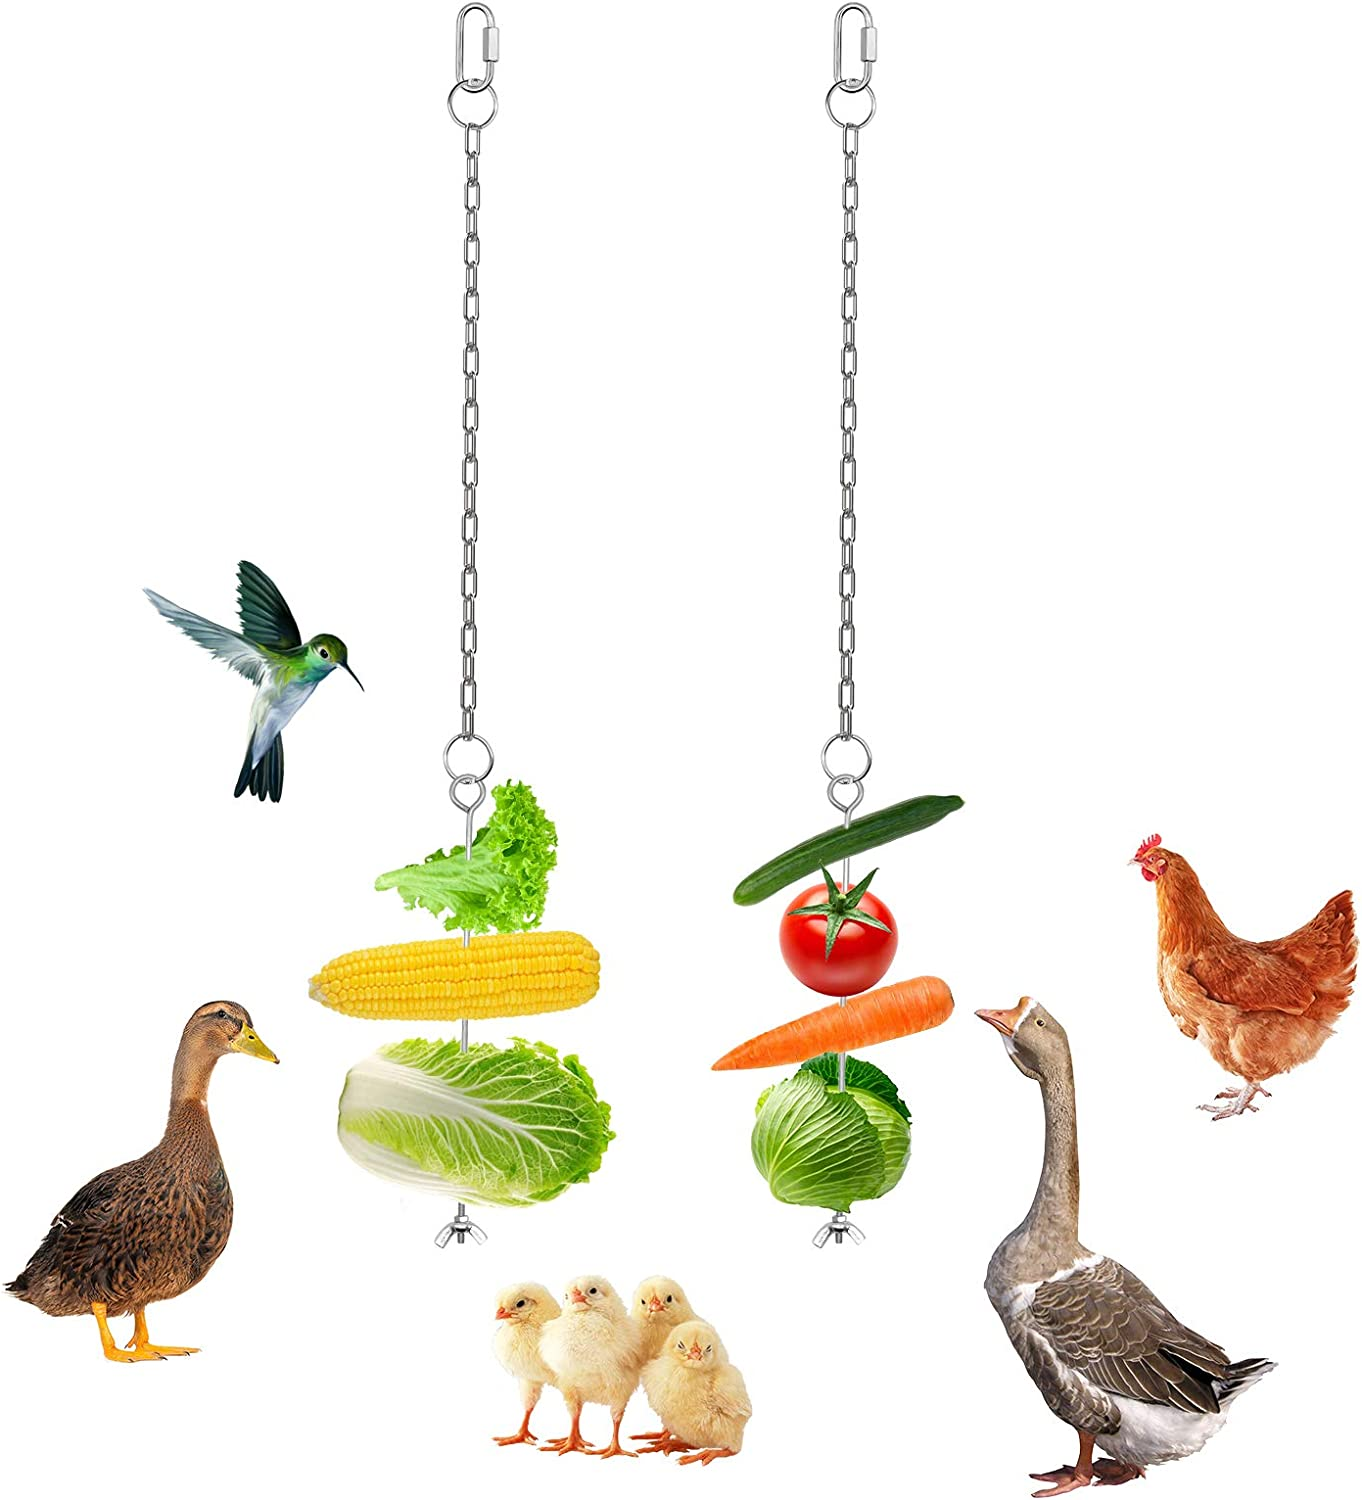 MIMORE 2 Pack Chicken Hanging Food Holder Fruit Vegetable Supporter Stainless Steel Stick Feeder Skewer Veggies with Chain Feeding Tools for Birds Parrots Pet Hens Duck Goose Poultry